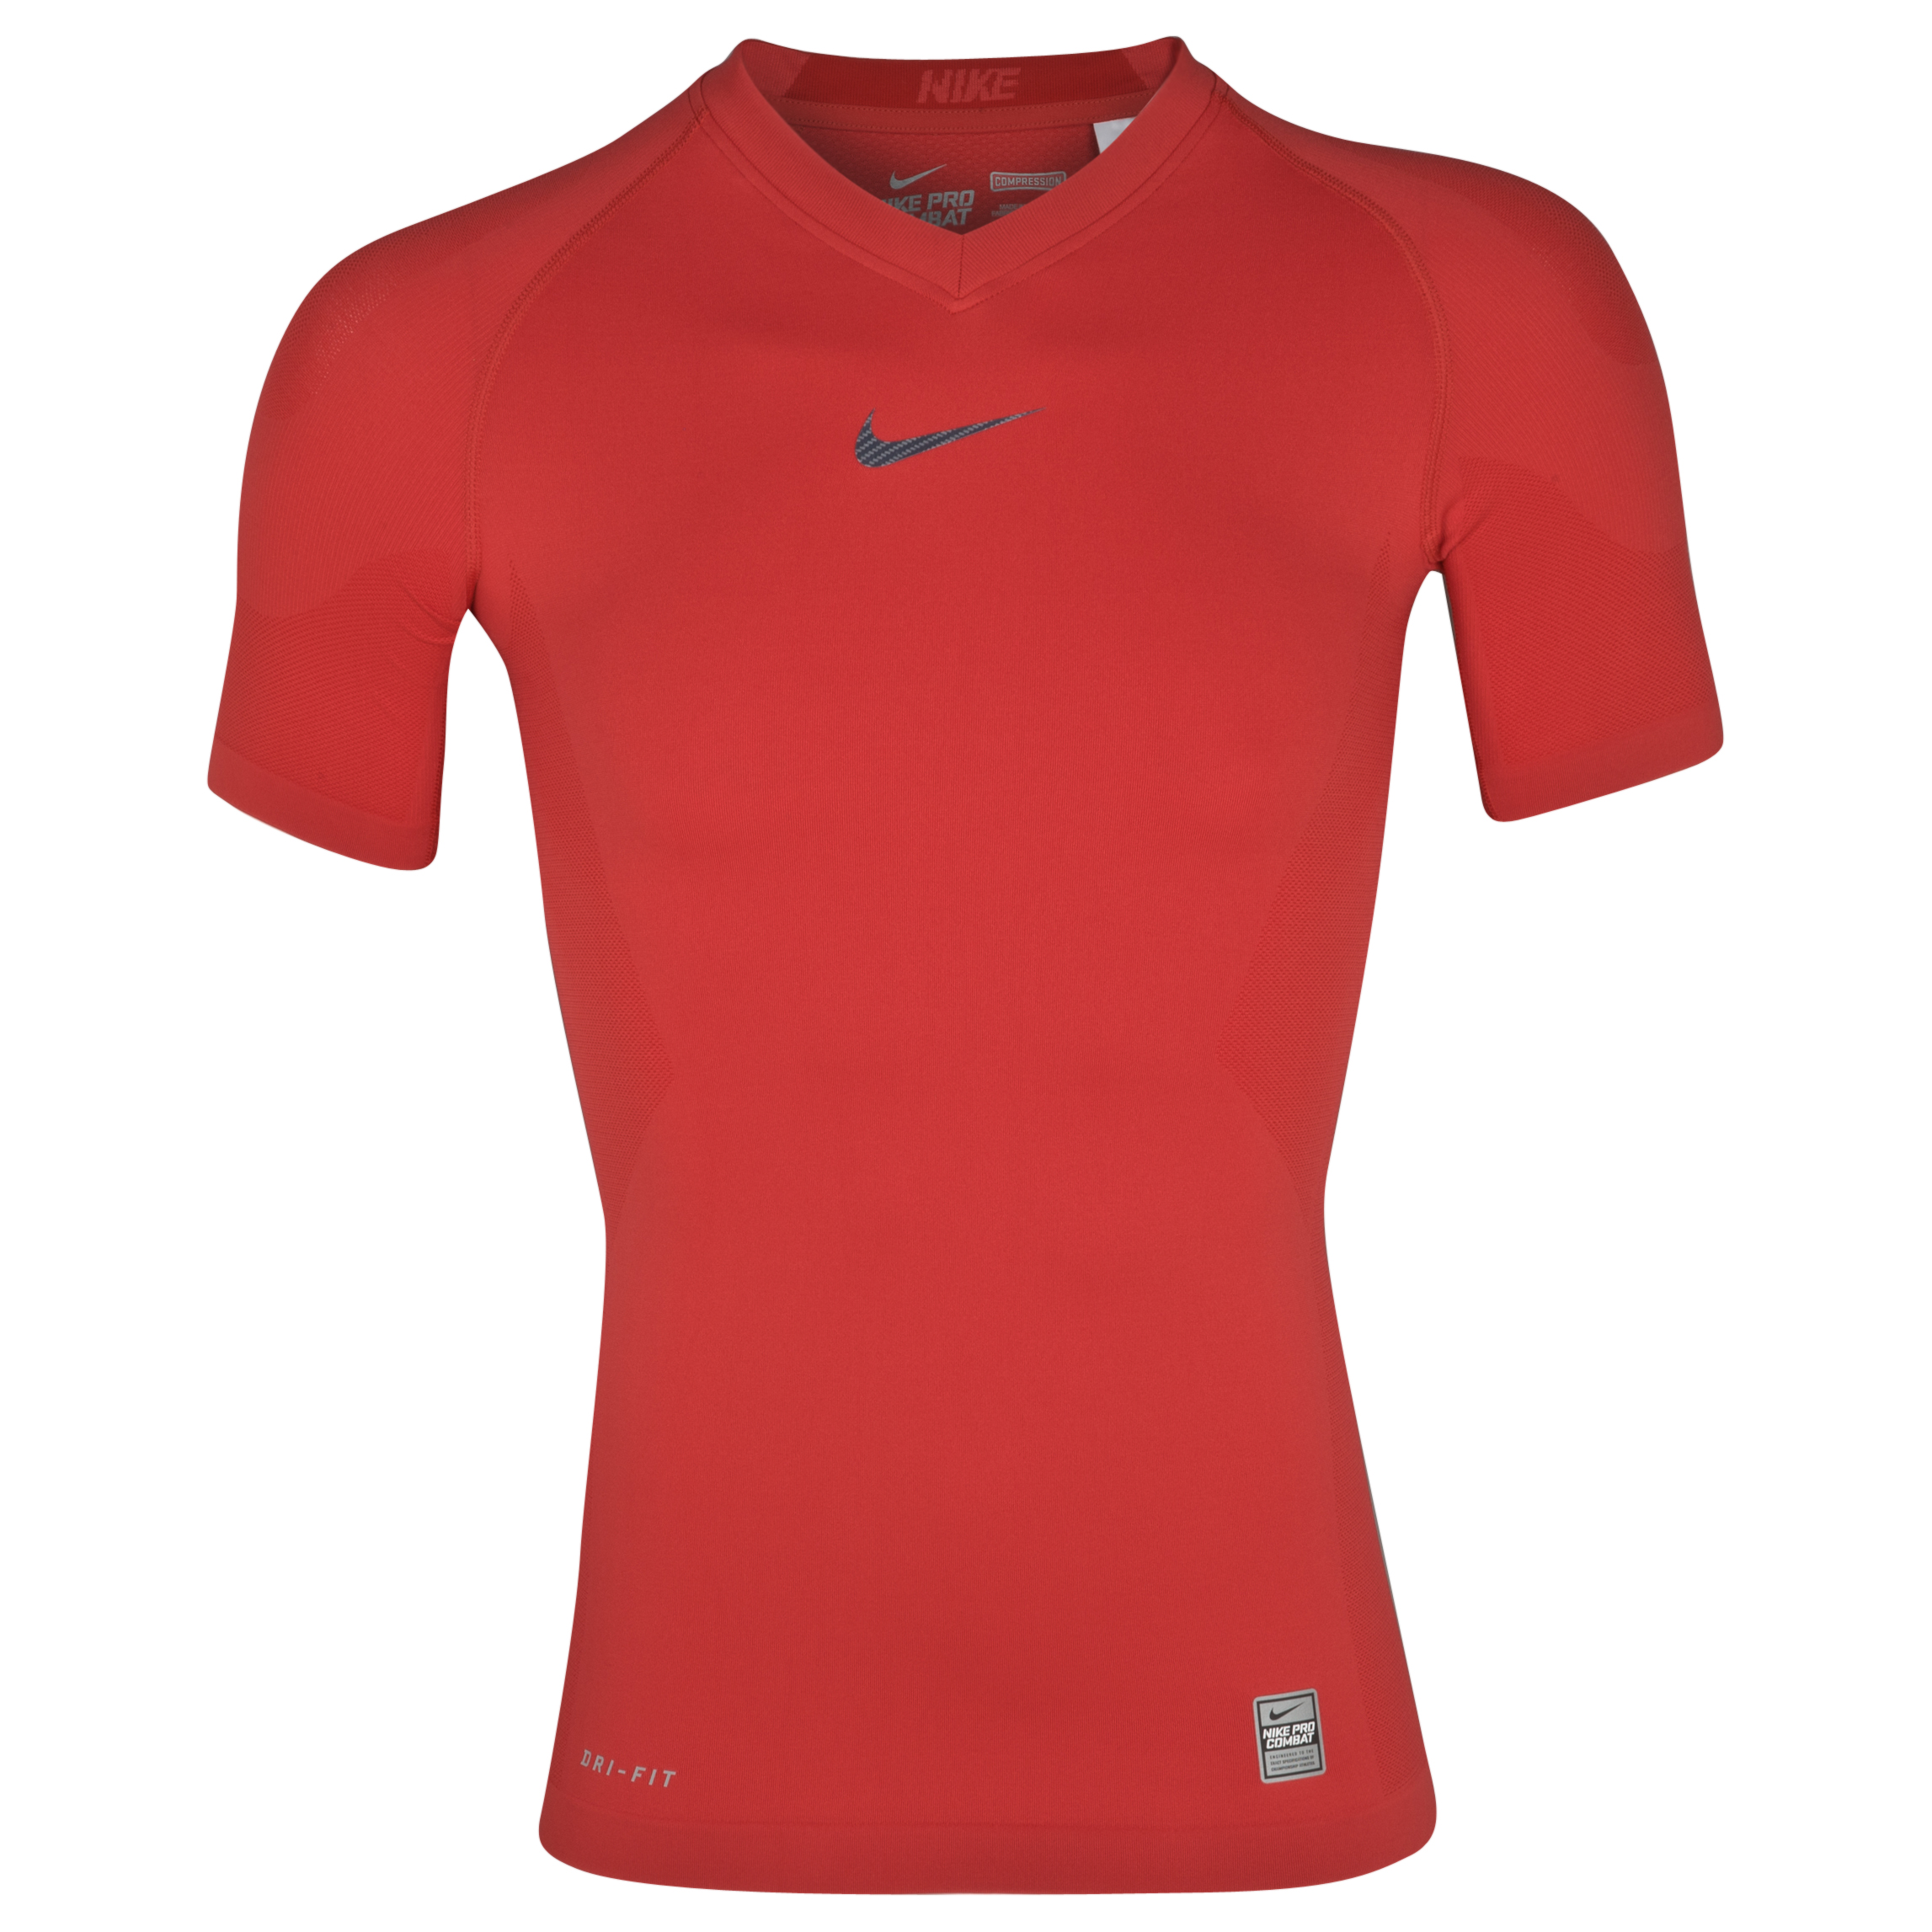 Nike Pro Combat Hypercool Vapor Top - Sport Red